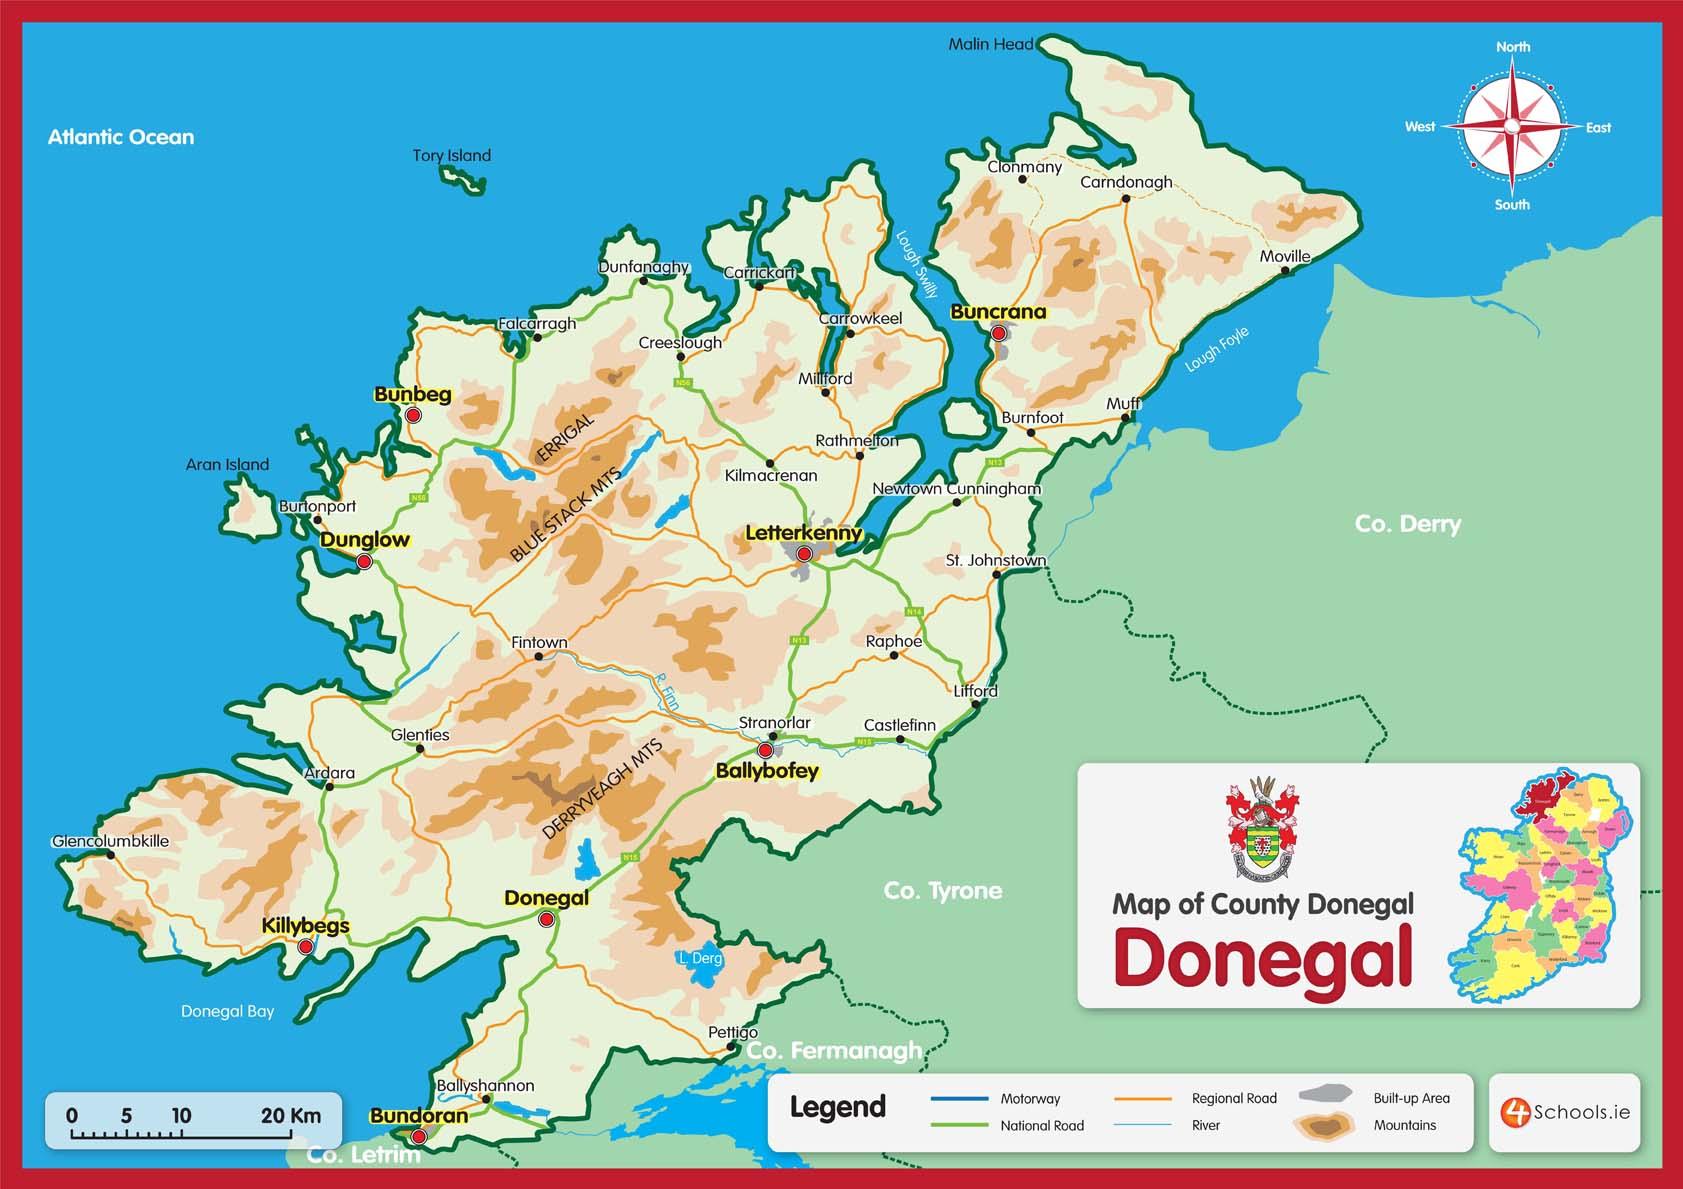 Donegal County Map